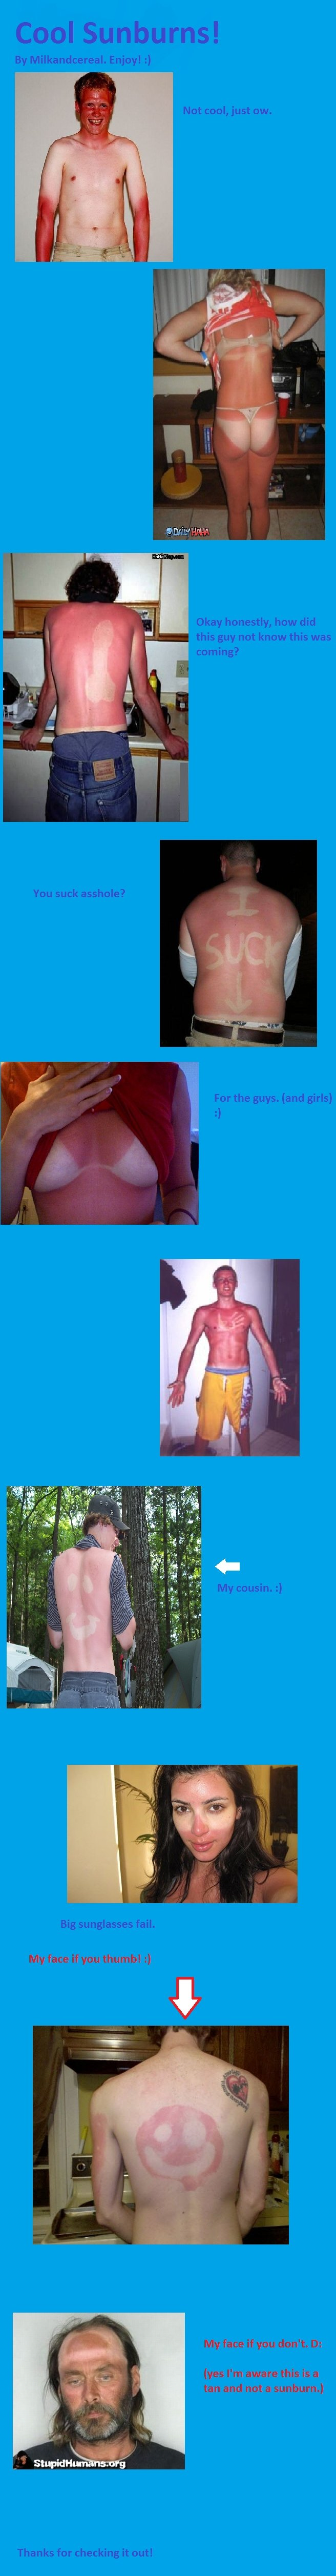 Sunburn Comp. This is my first upload, go easy on me. .. have fun taking a shower for the next 2 months